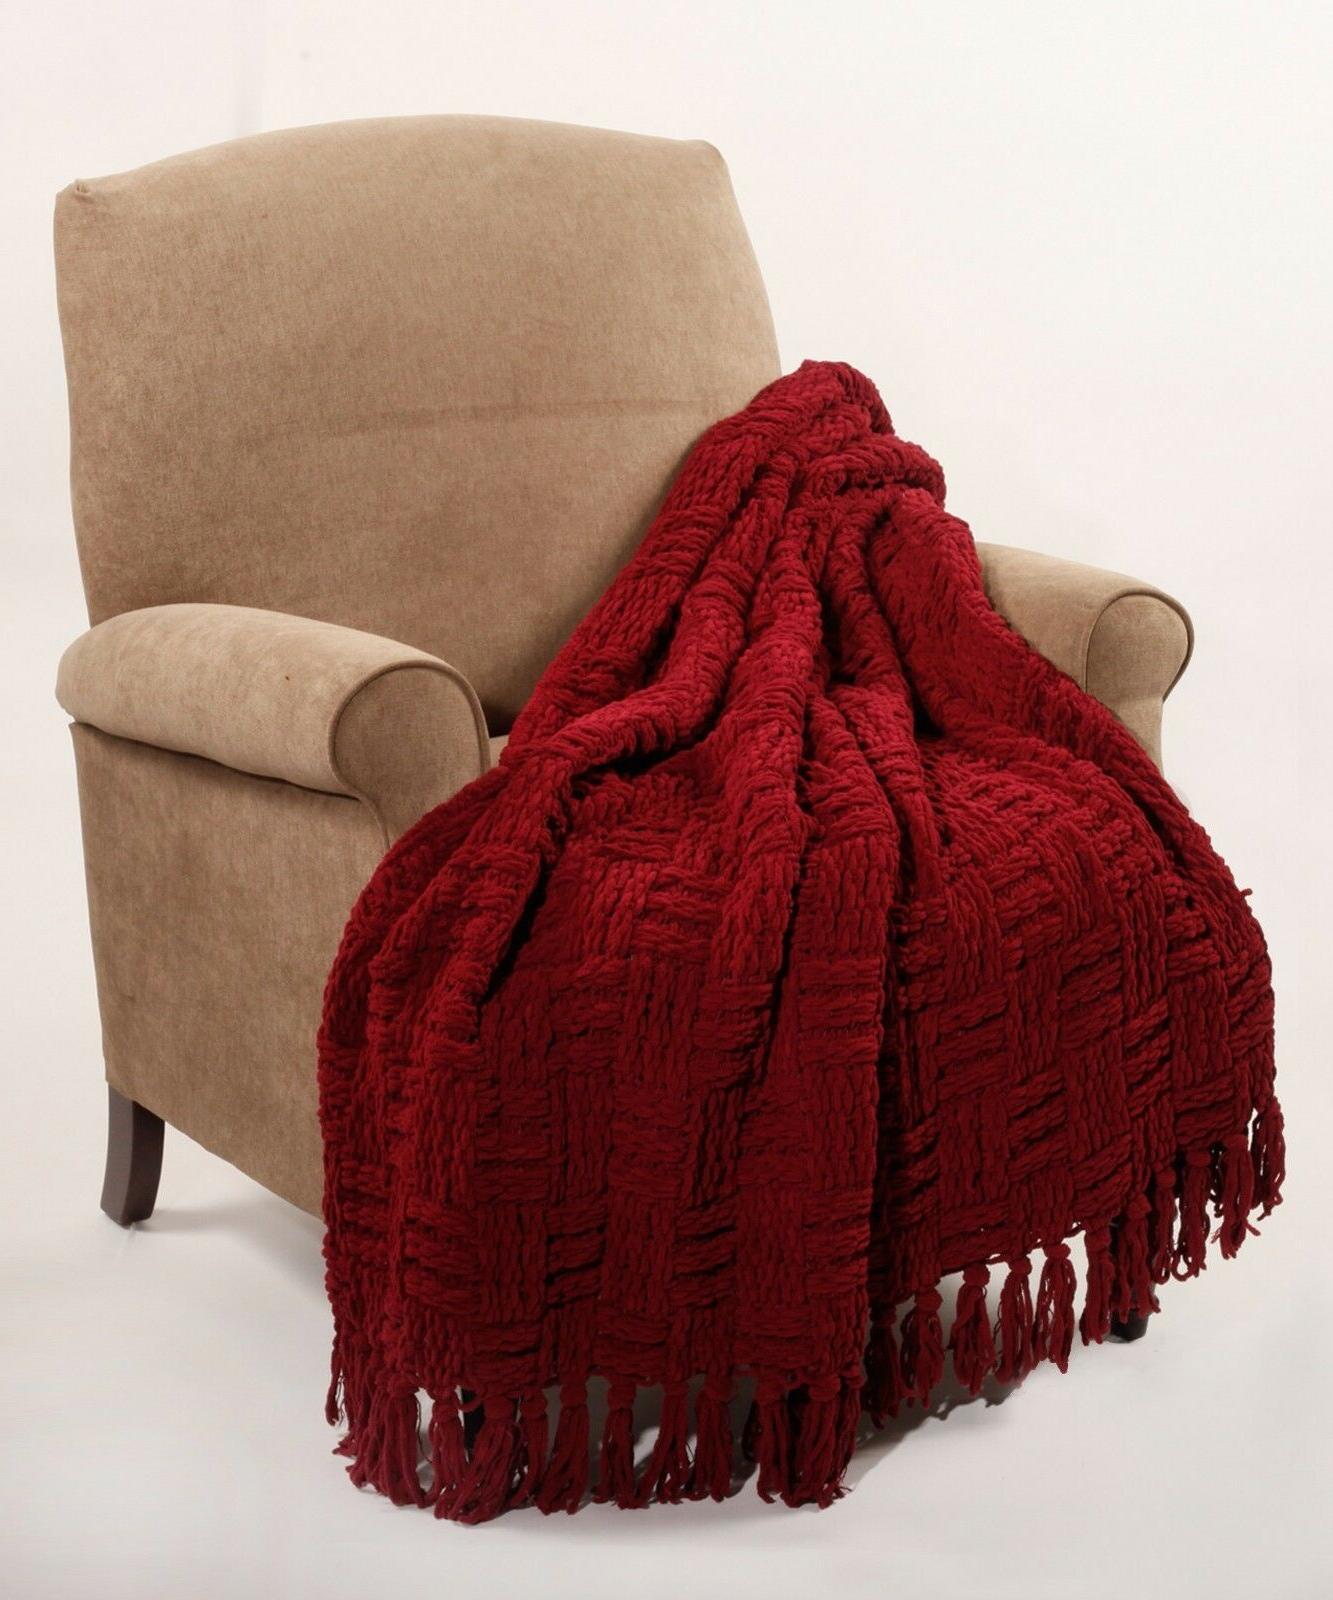 BOON Bedding Cable Knitted Throw Couch Cover Blanket Light W